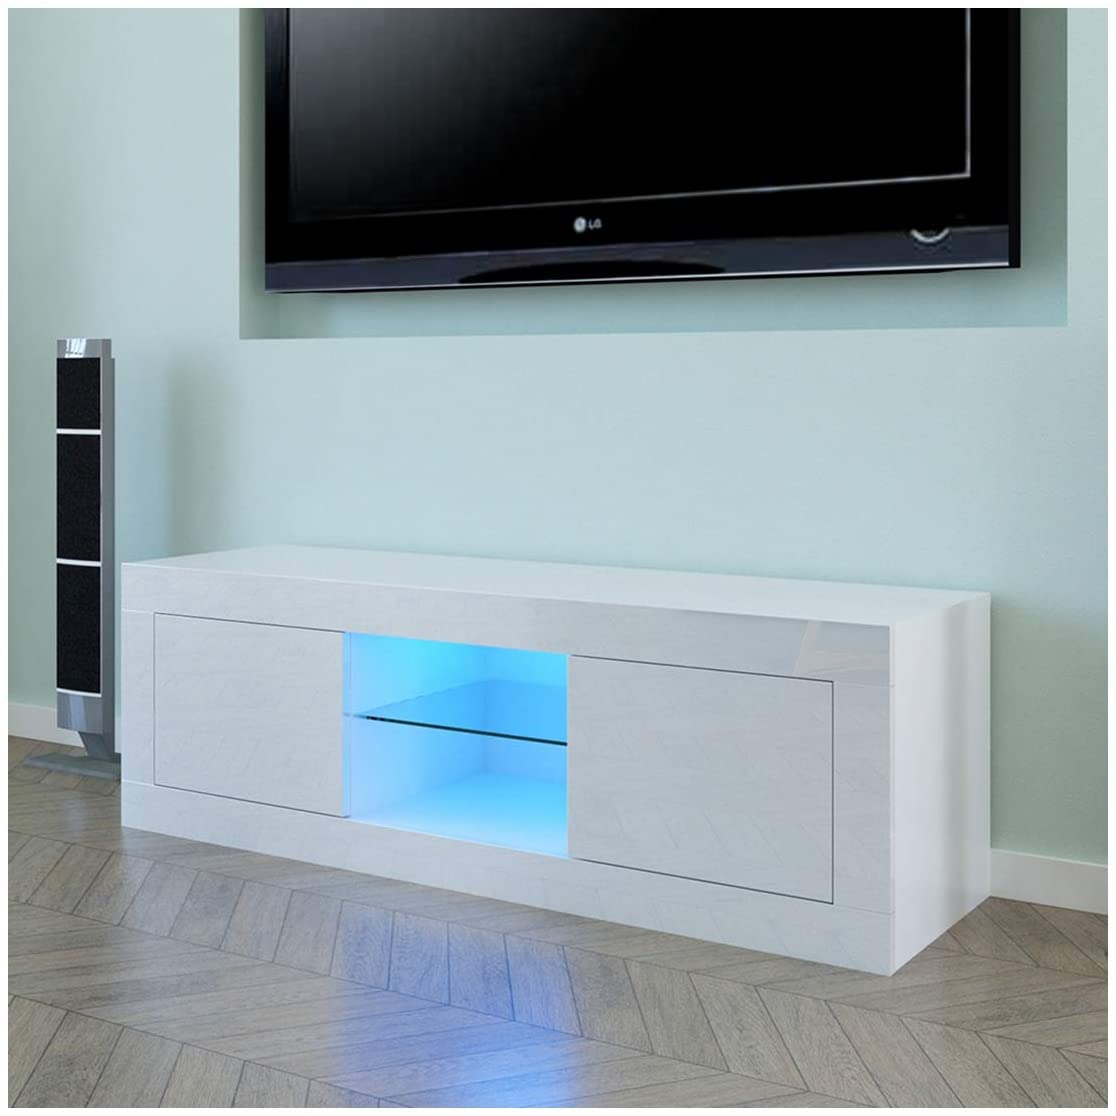 Household Decoration LED TV Cabinet, Elegant TV Stand with Two Doors, White